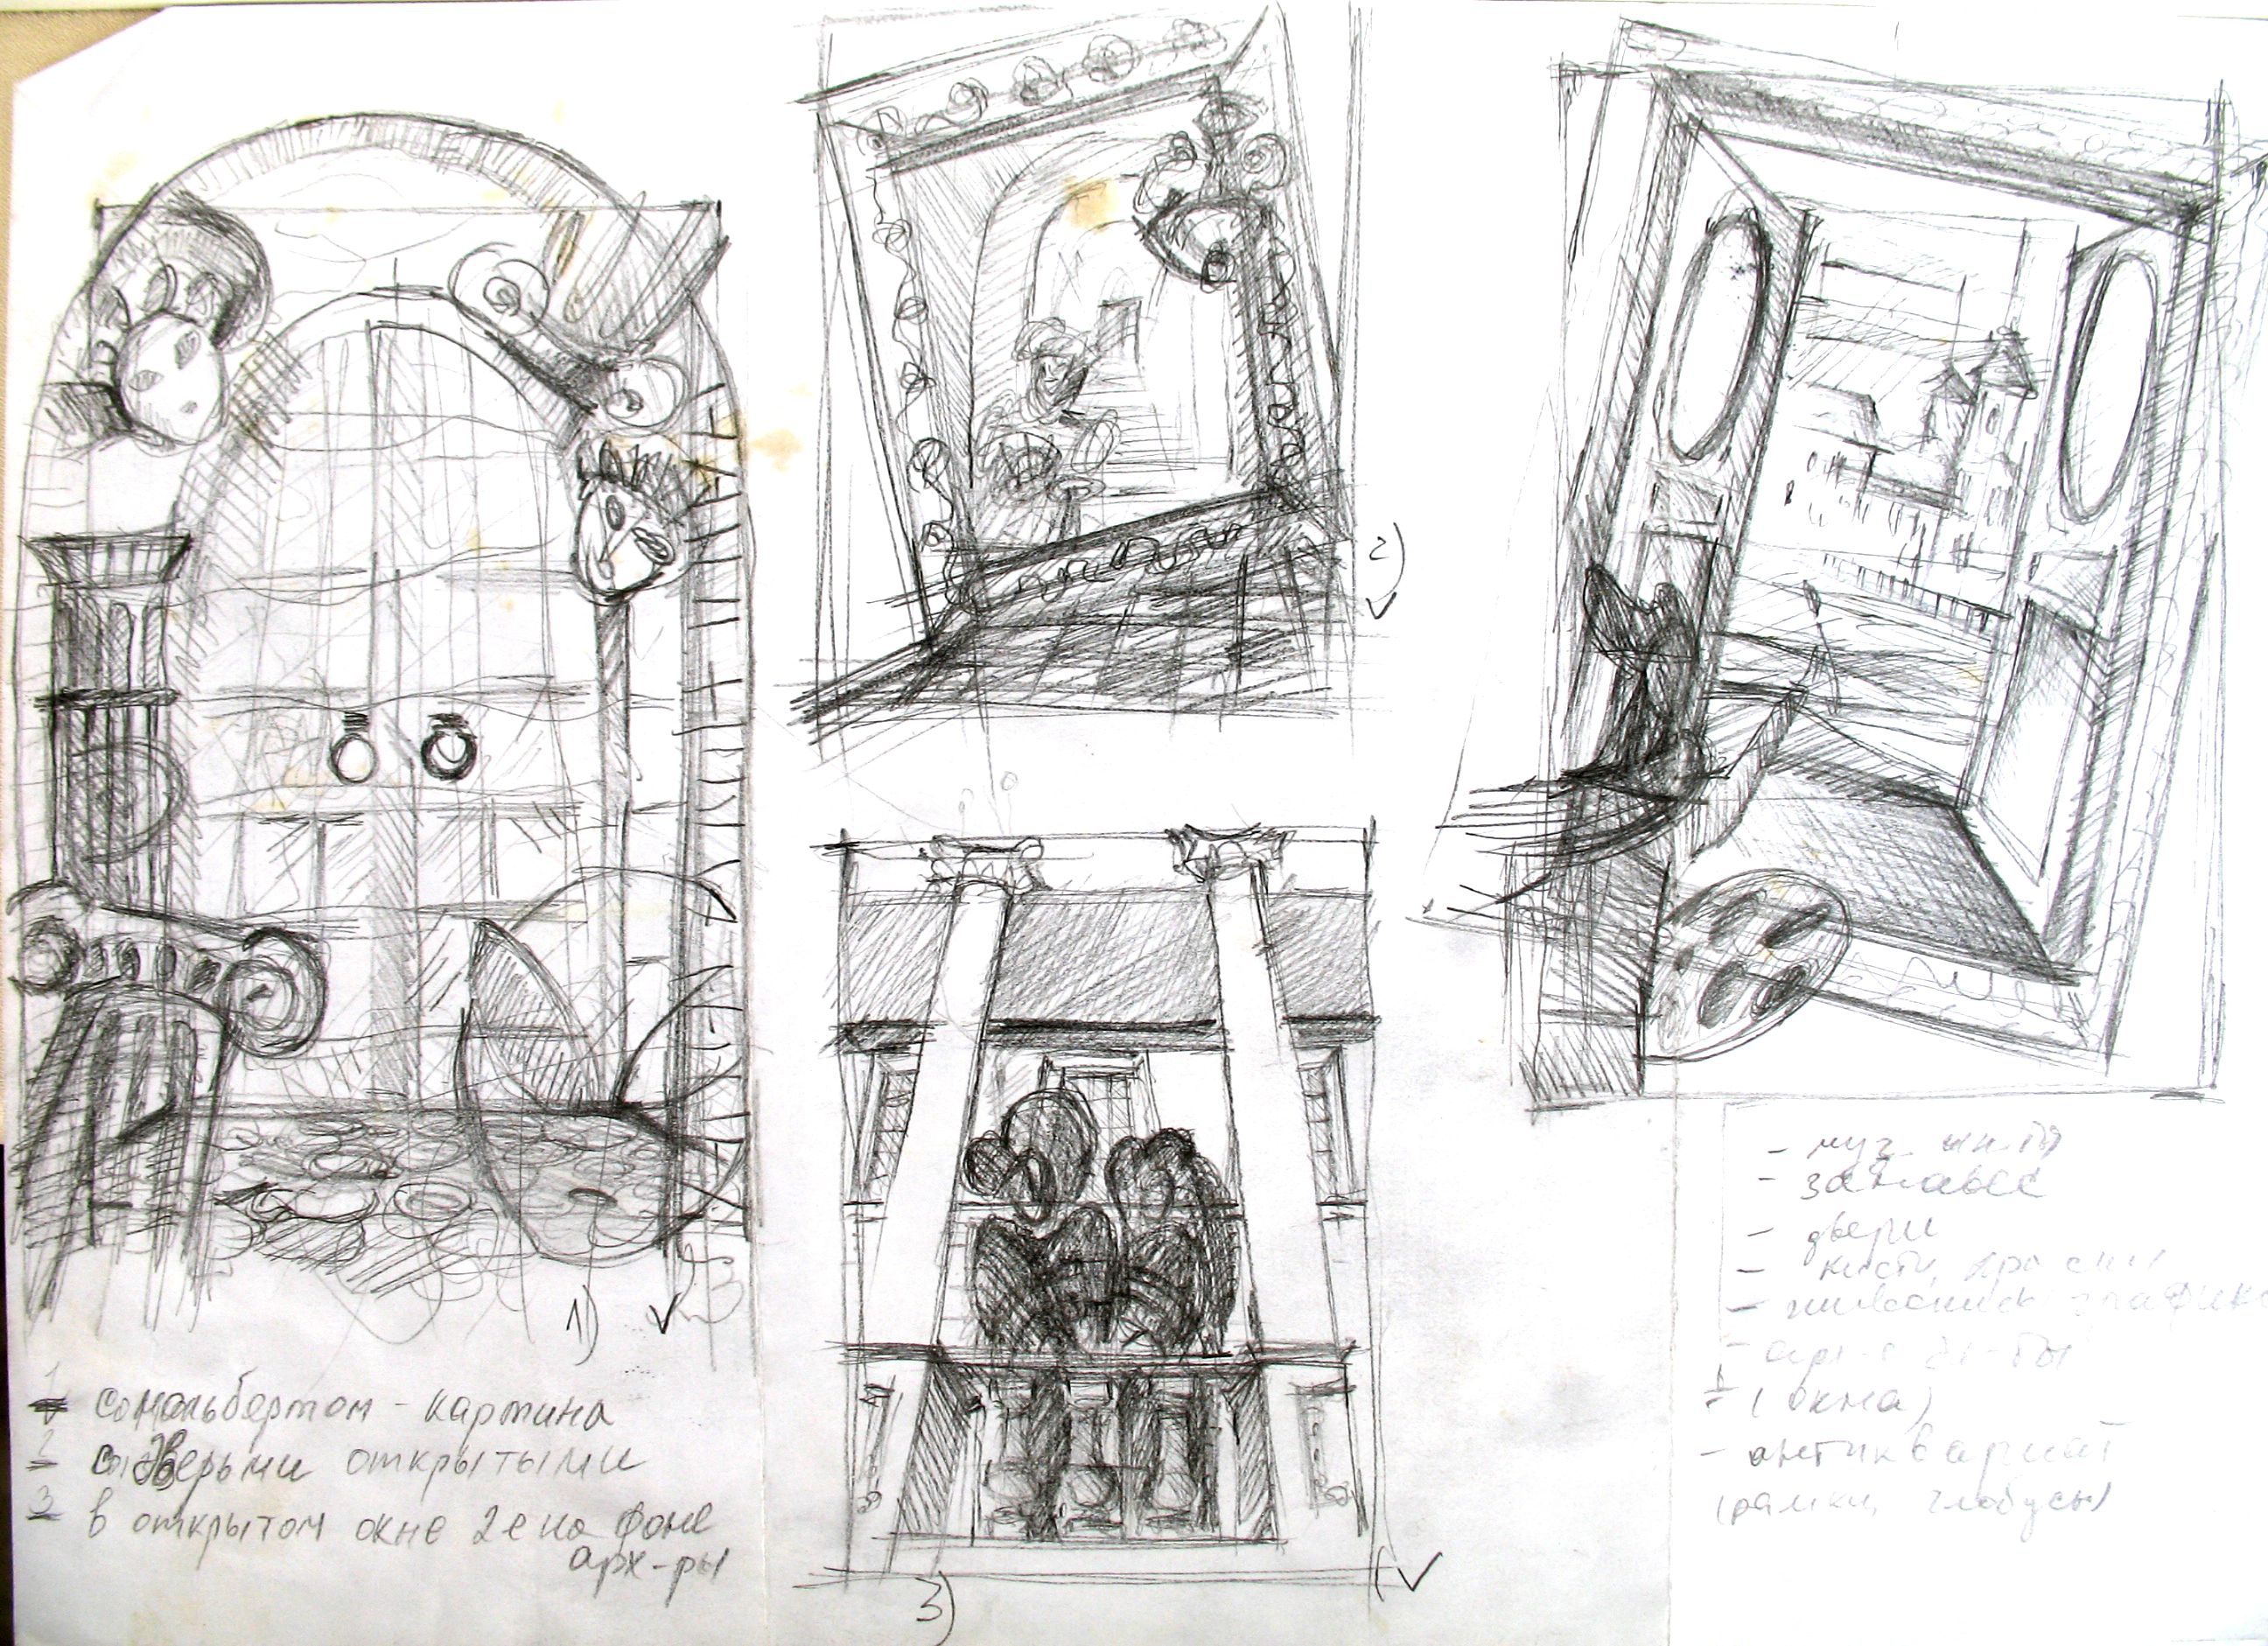 sketches for art collages for puppet theater sketches sketching pencil painted drawing 3handdrawing theater [ 2592 x 1881 Pixel ]